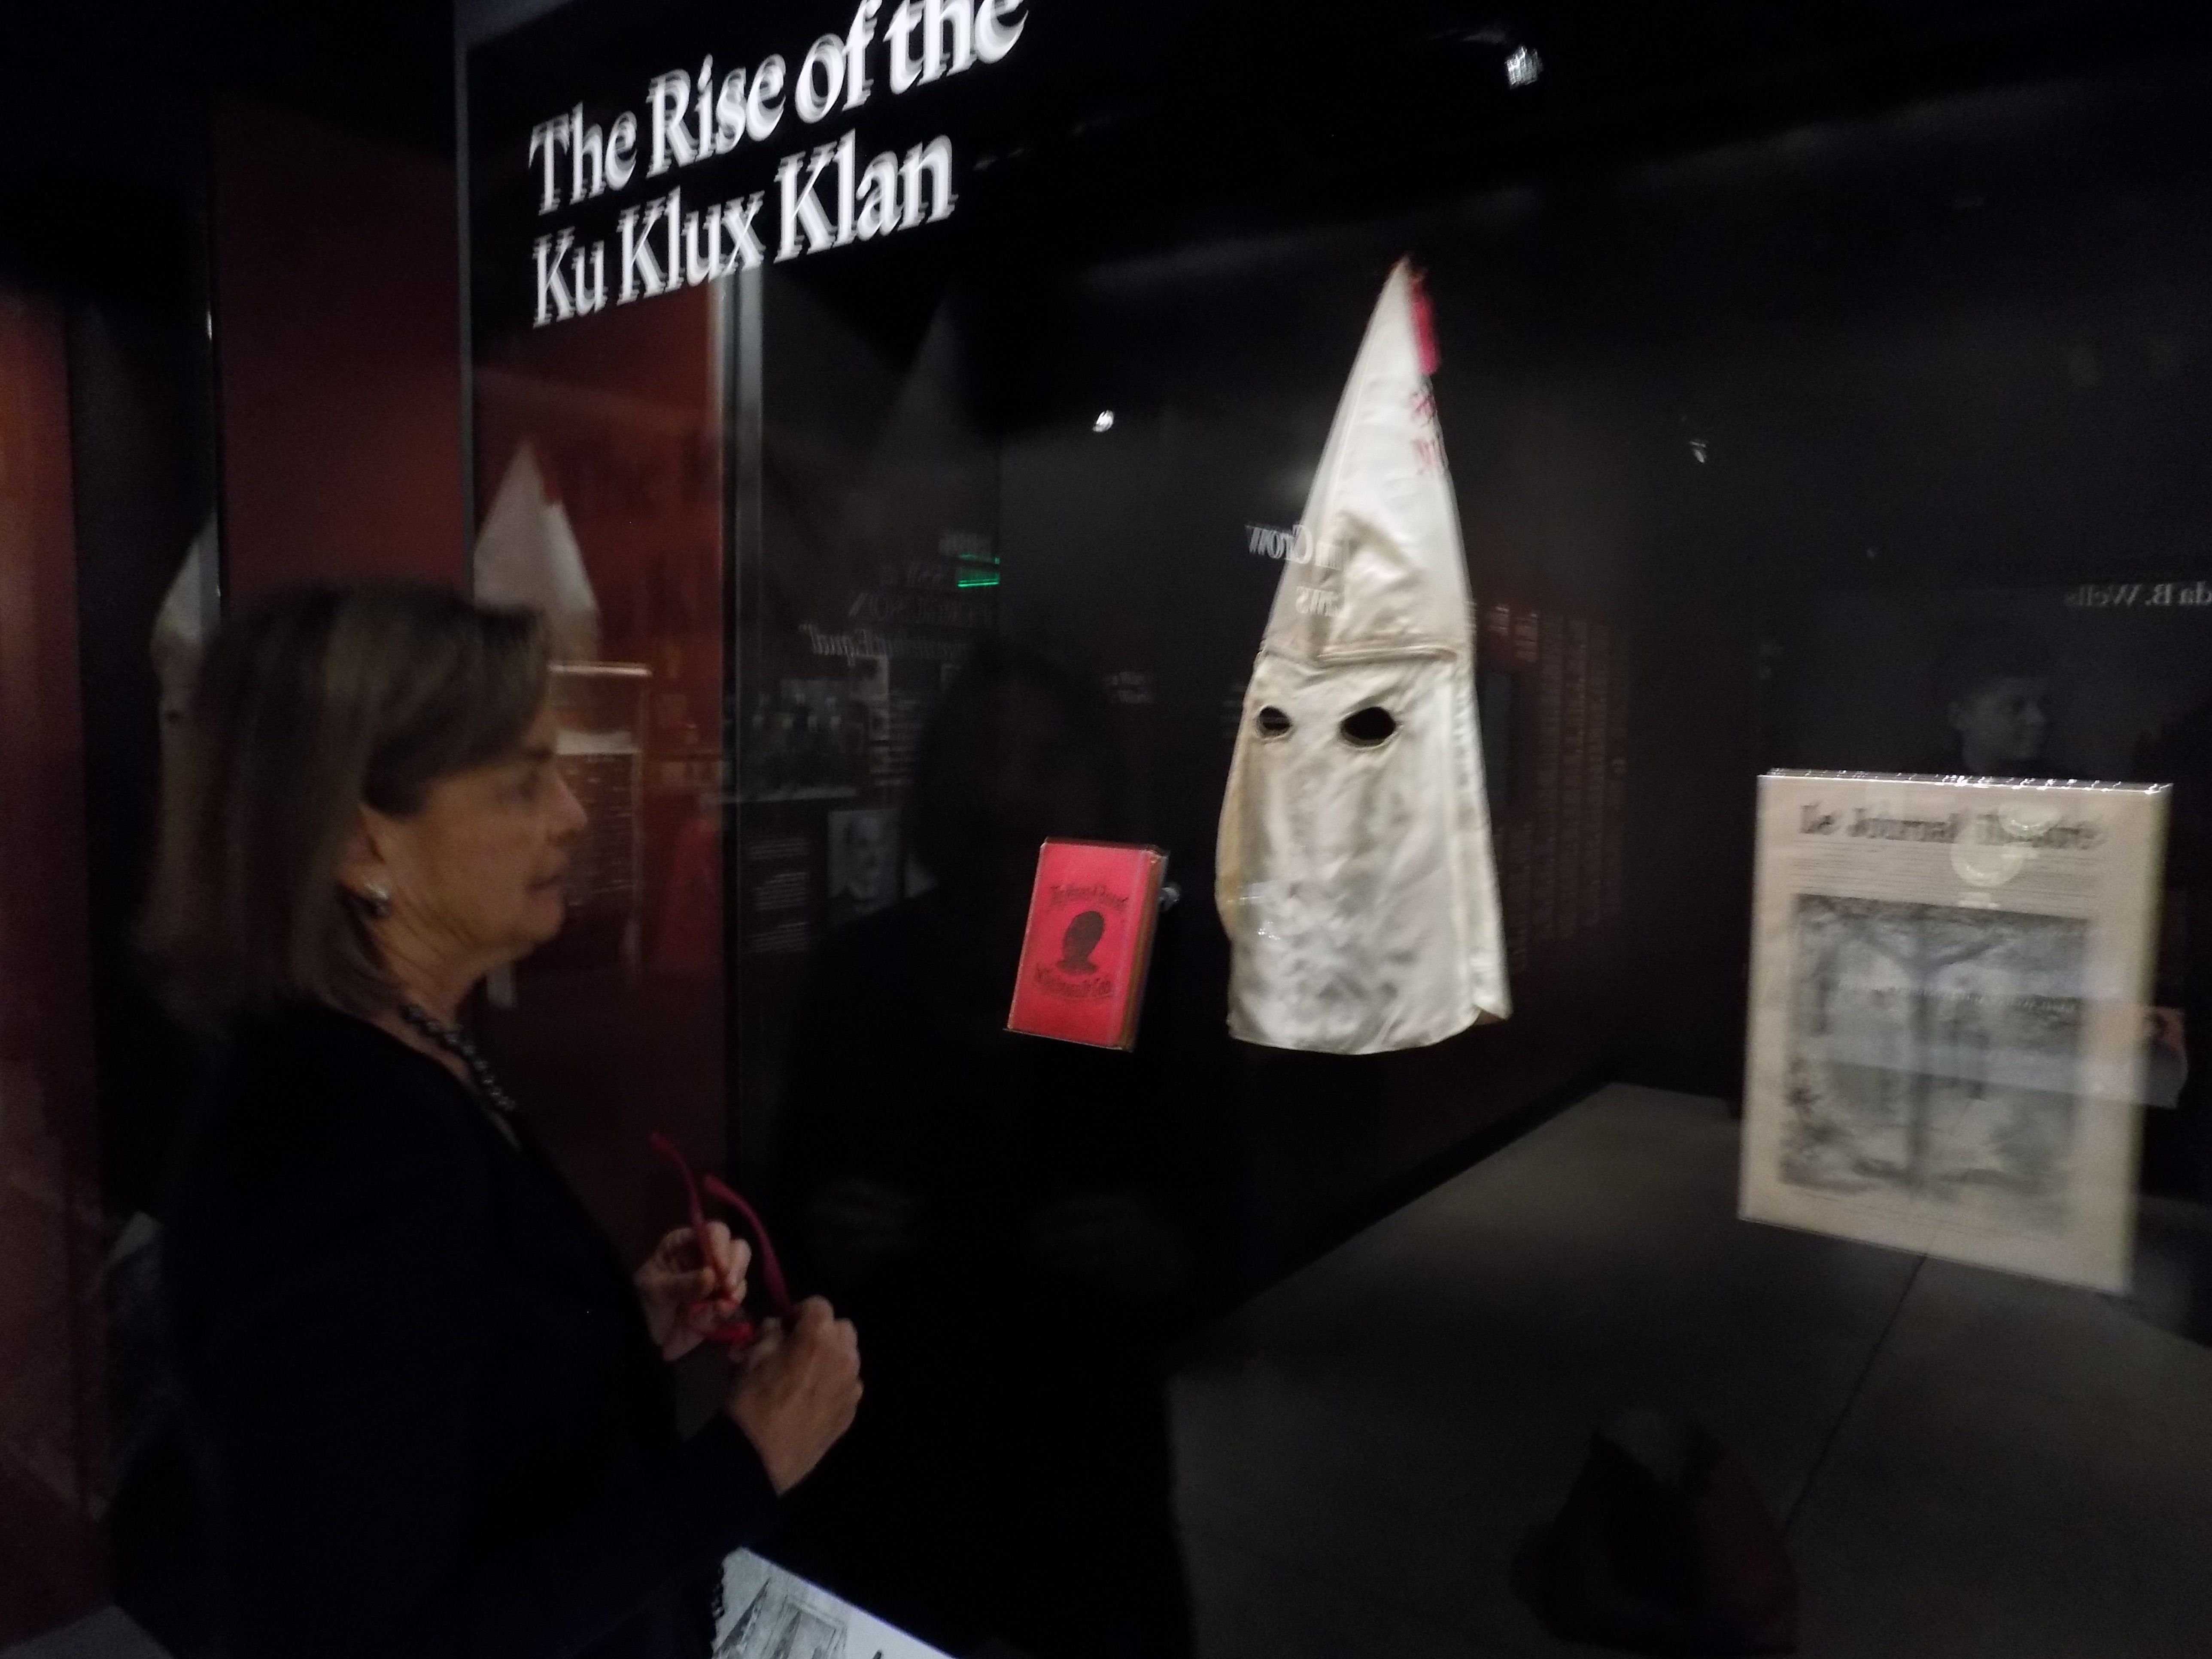 THE TERRIFYING KU KLUX KLAN ORIGINATED IN THE SOUTH IN 1865  IT IS STILL AN ACTIVE ORGANIZATION TODAY AND HAS INSERTED ITSELF INTO THE PRESIDENTIAL ELECTION. DAVID DUKE OF LOUISIANA, A FORMER IMPERIAL WIZARD OF THE KKK, IS CURRENTLY RUNNING FOR THE US SENATE.